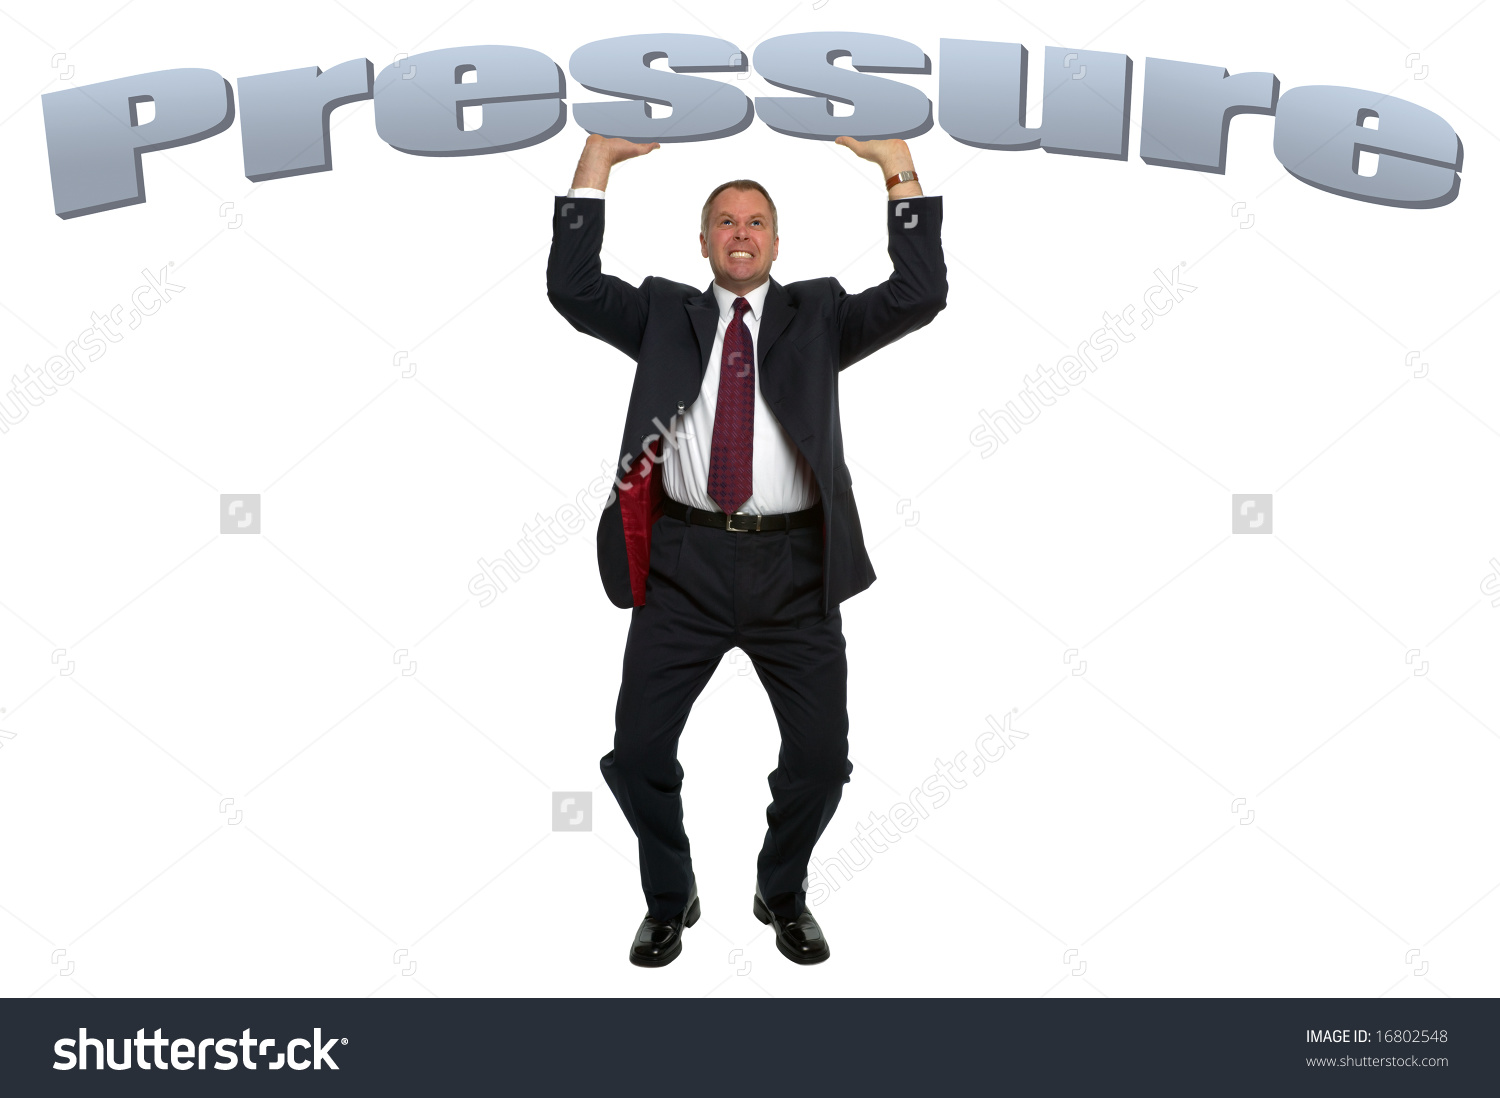 Blood Pressure Clipart